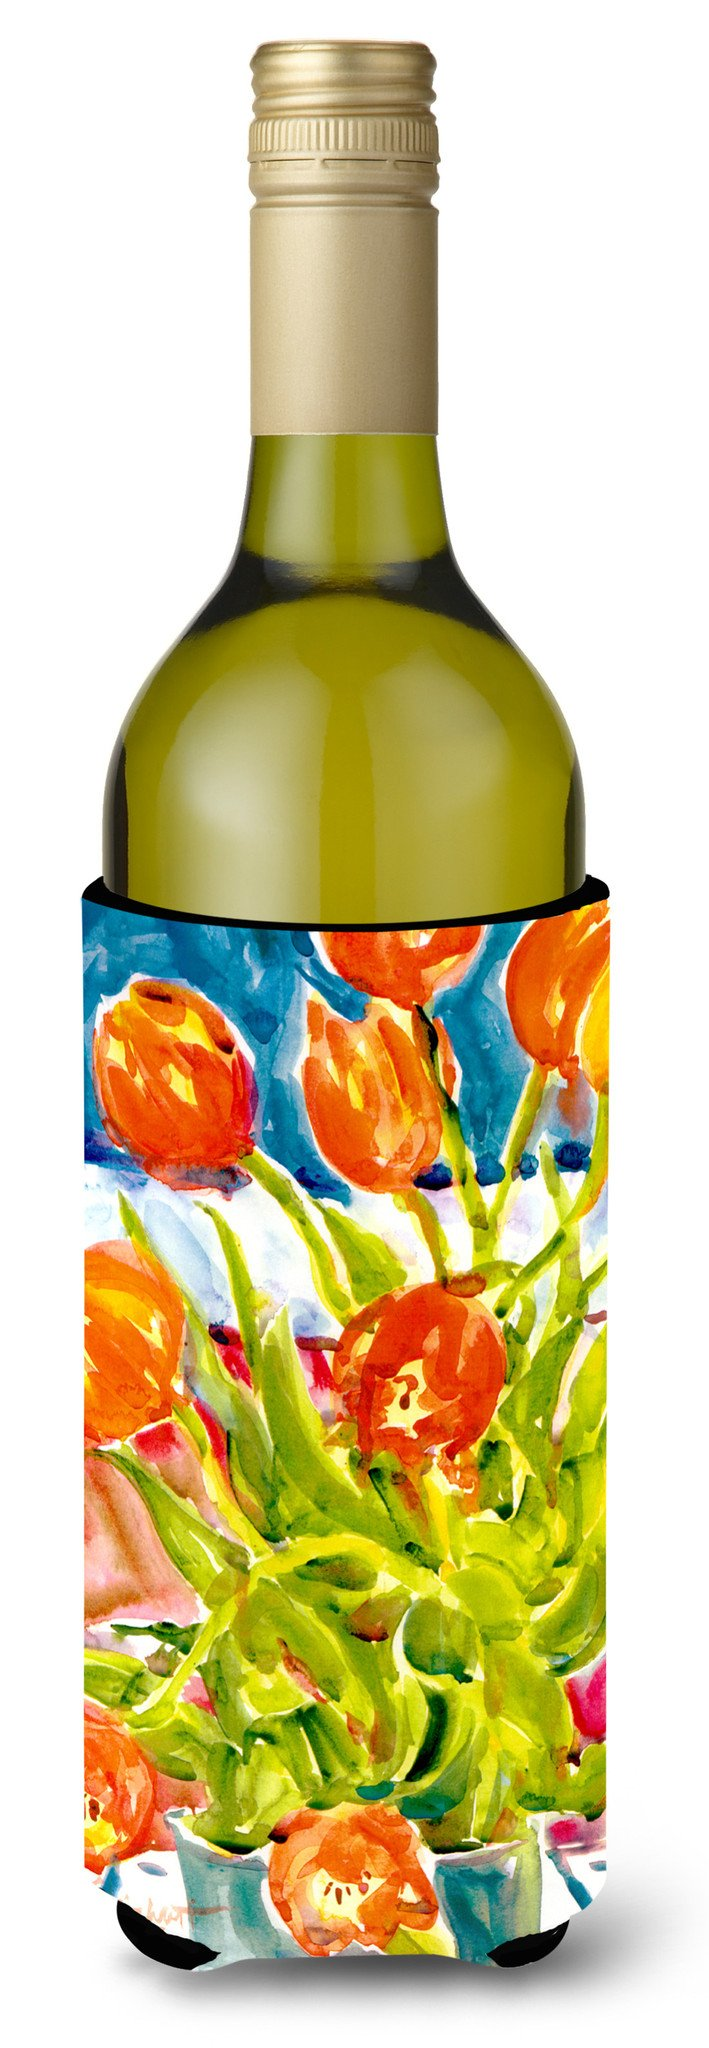 Buy this Flowers - Tulips Wine Bottle Beverage Insulator Beverage Insulator Hugger